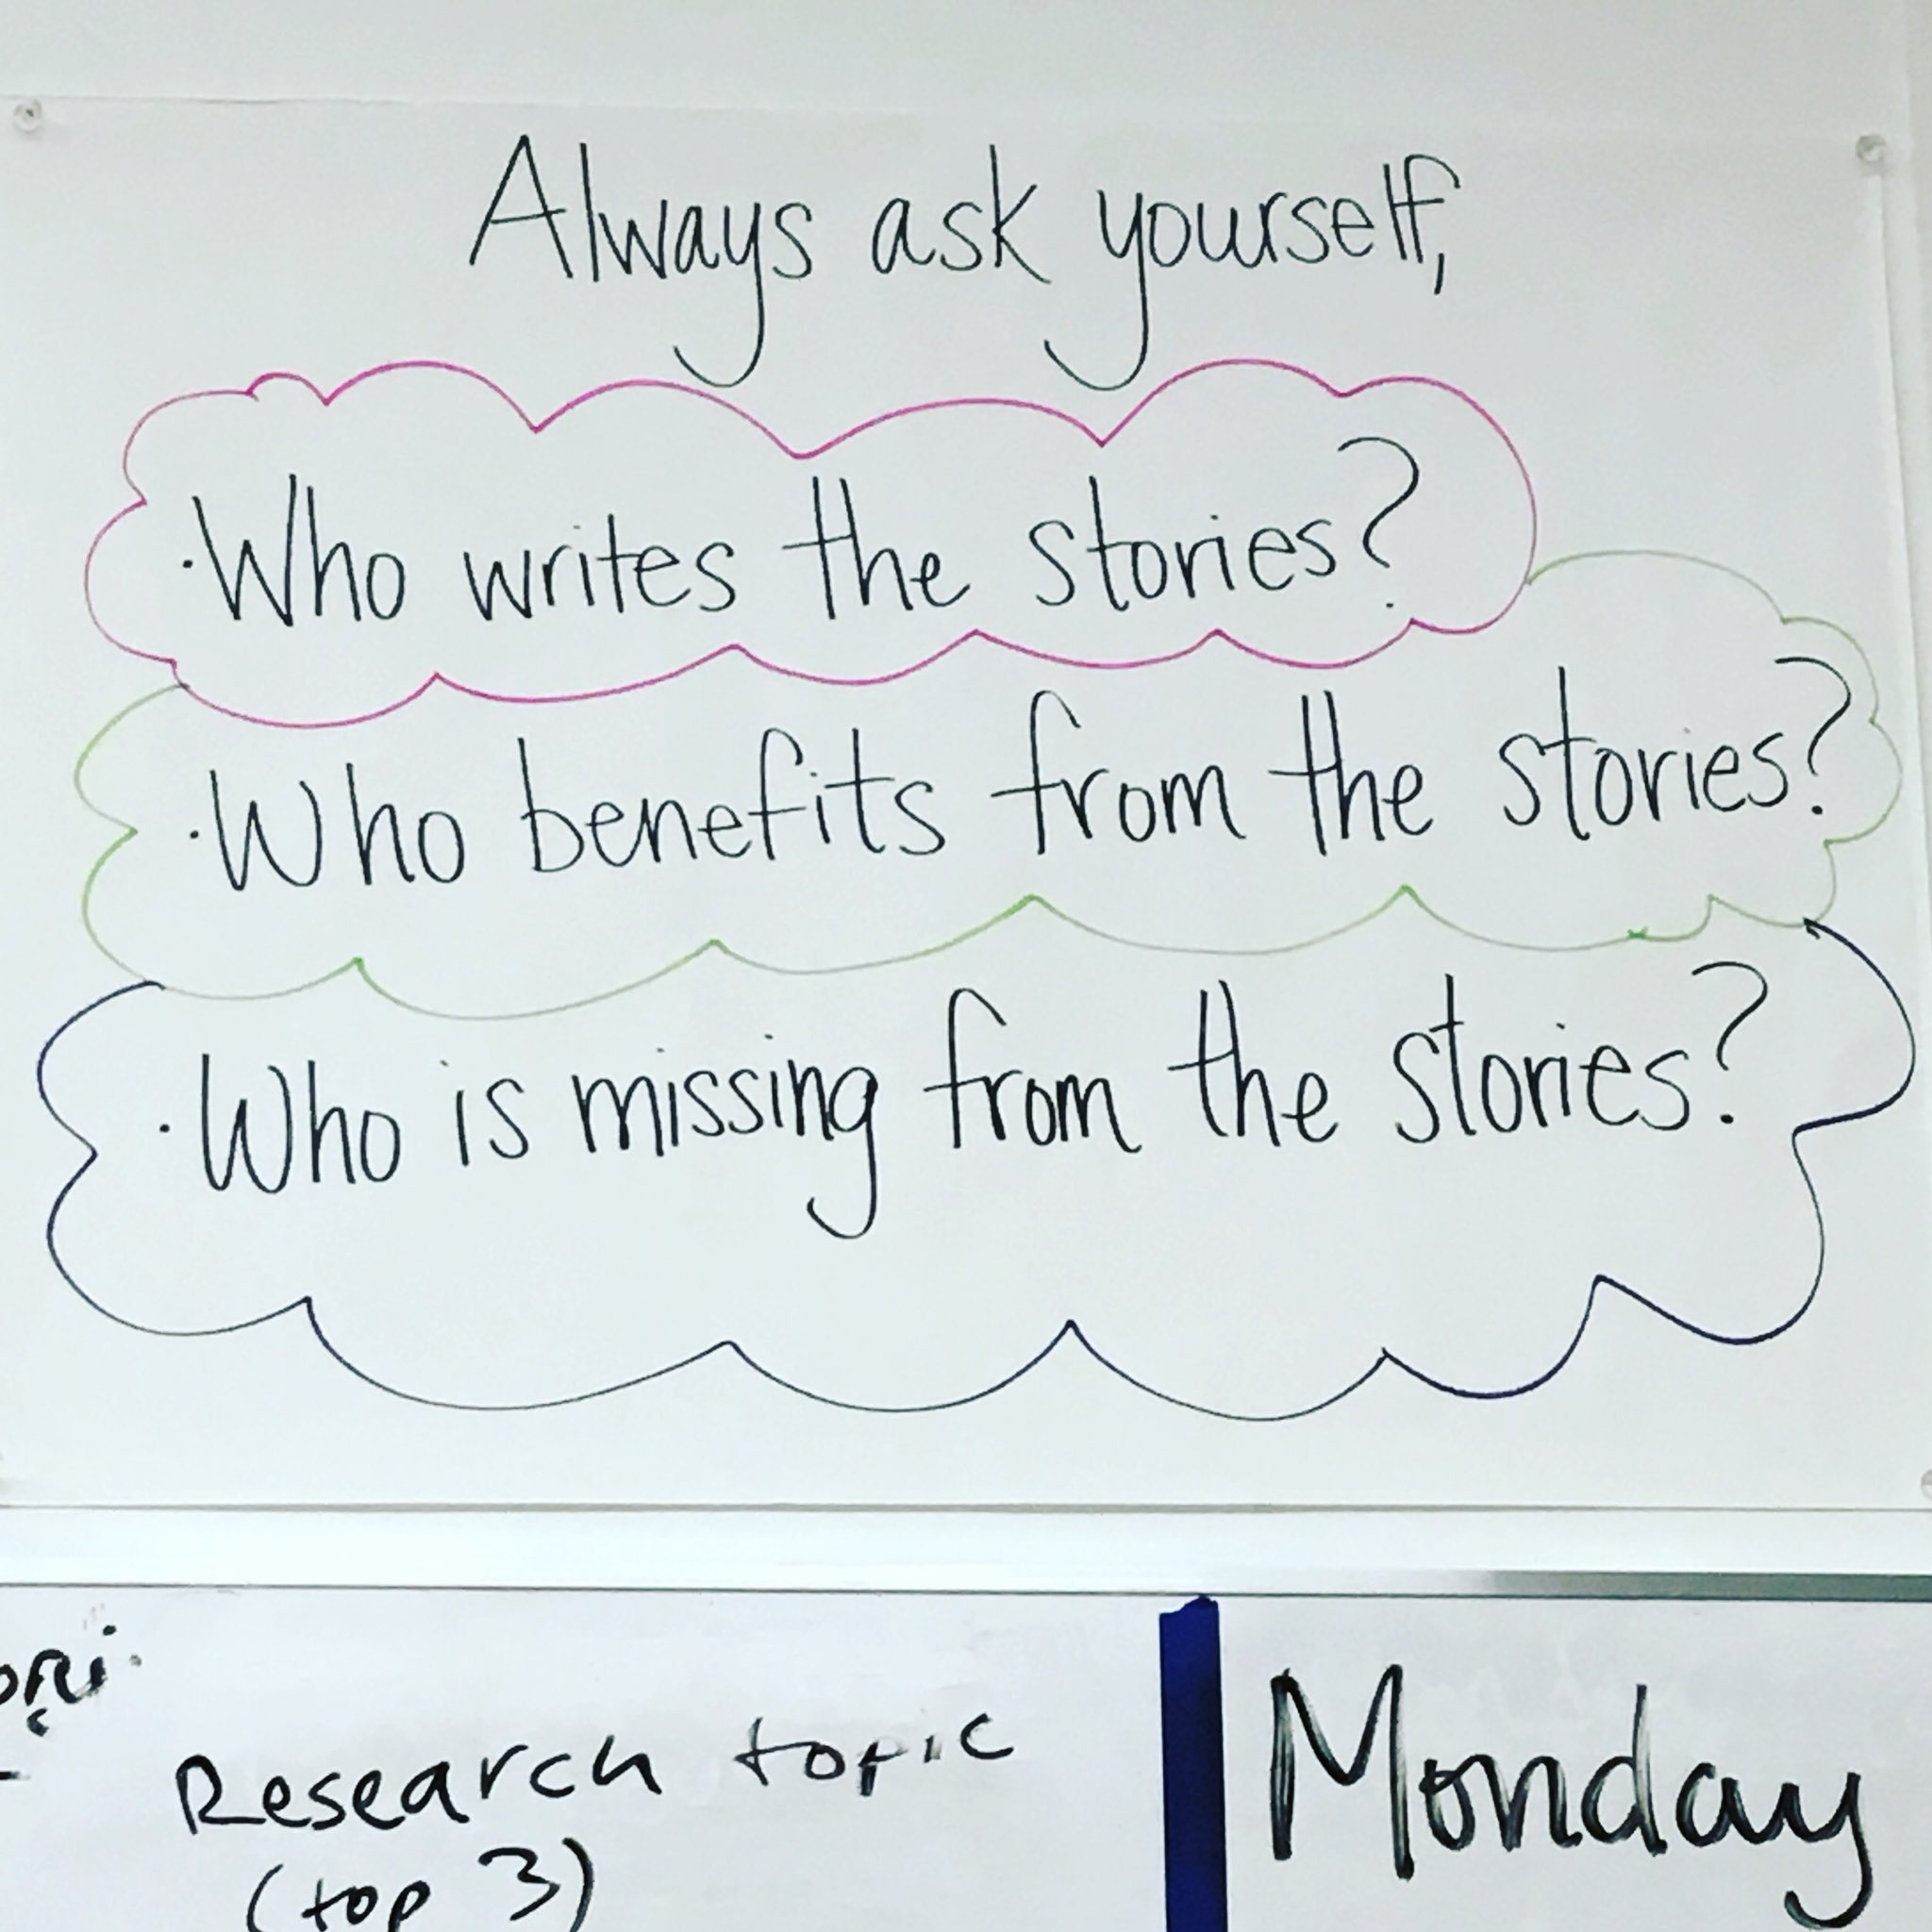 Excellent questions from the wall of my daughter's classroom. https://t.co/ntgKHYG9eU